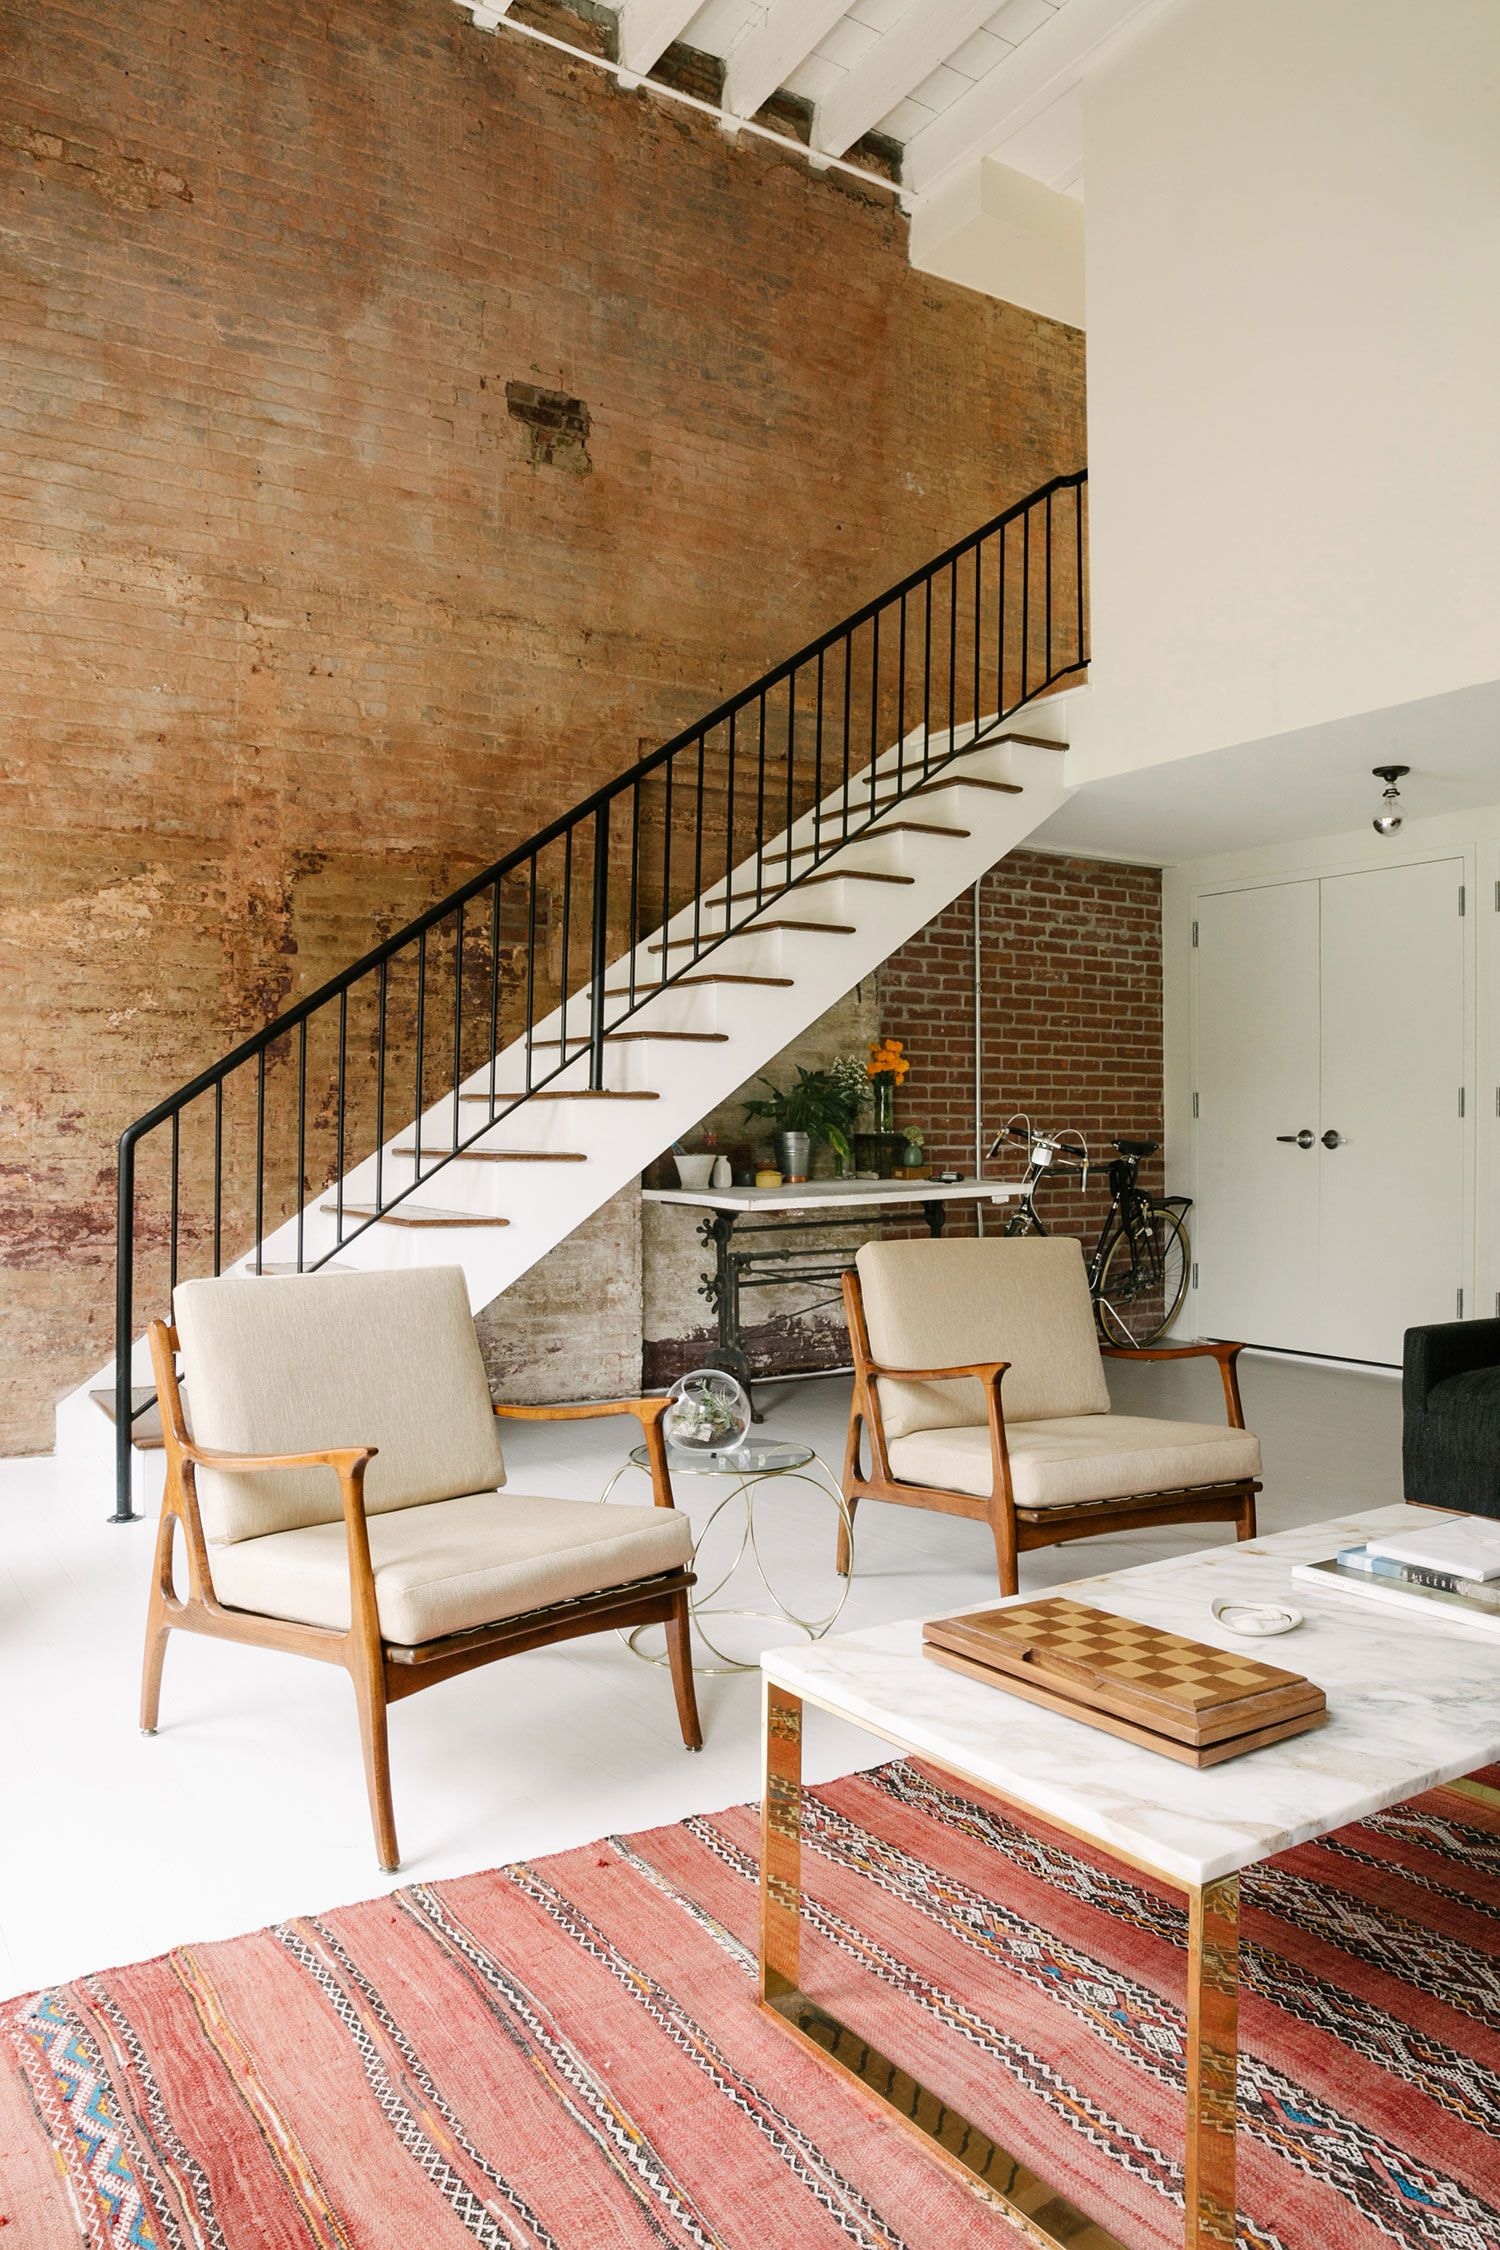 Village home interior design an eclectic loft in the west village  rue  eclectic interior